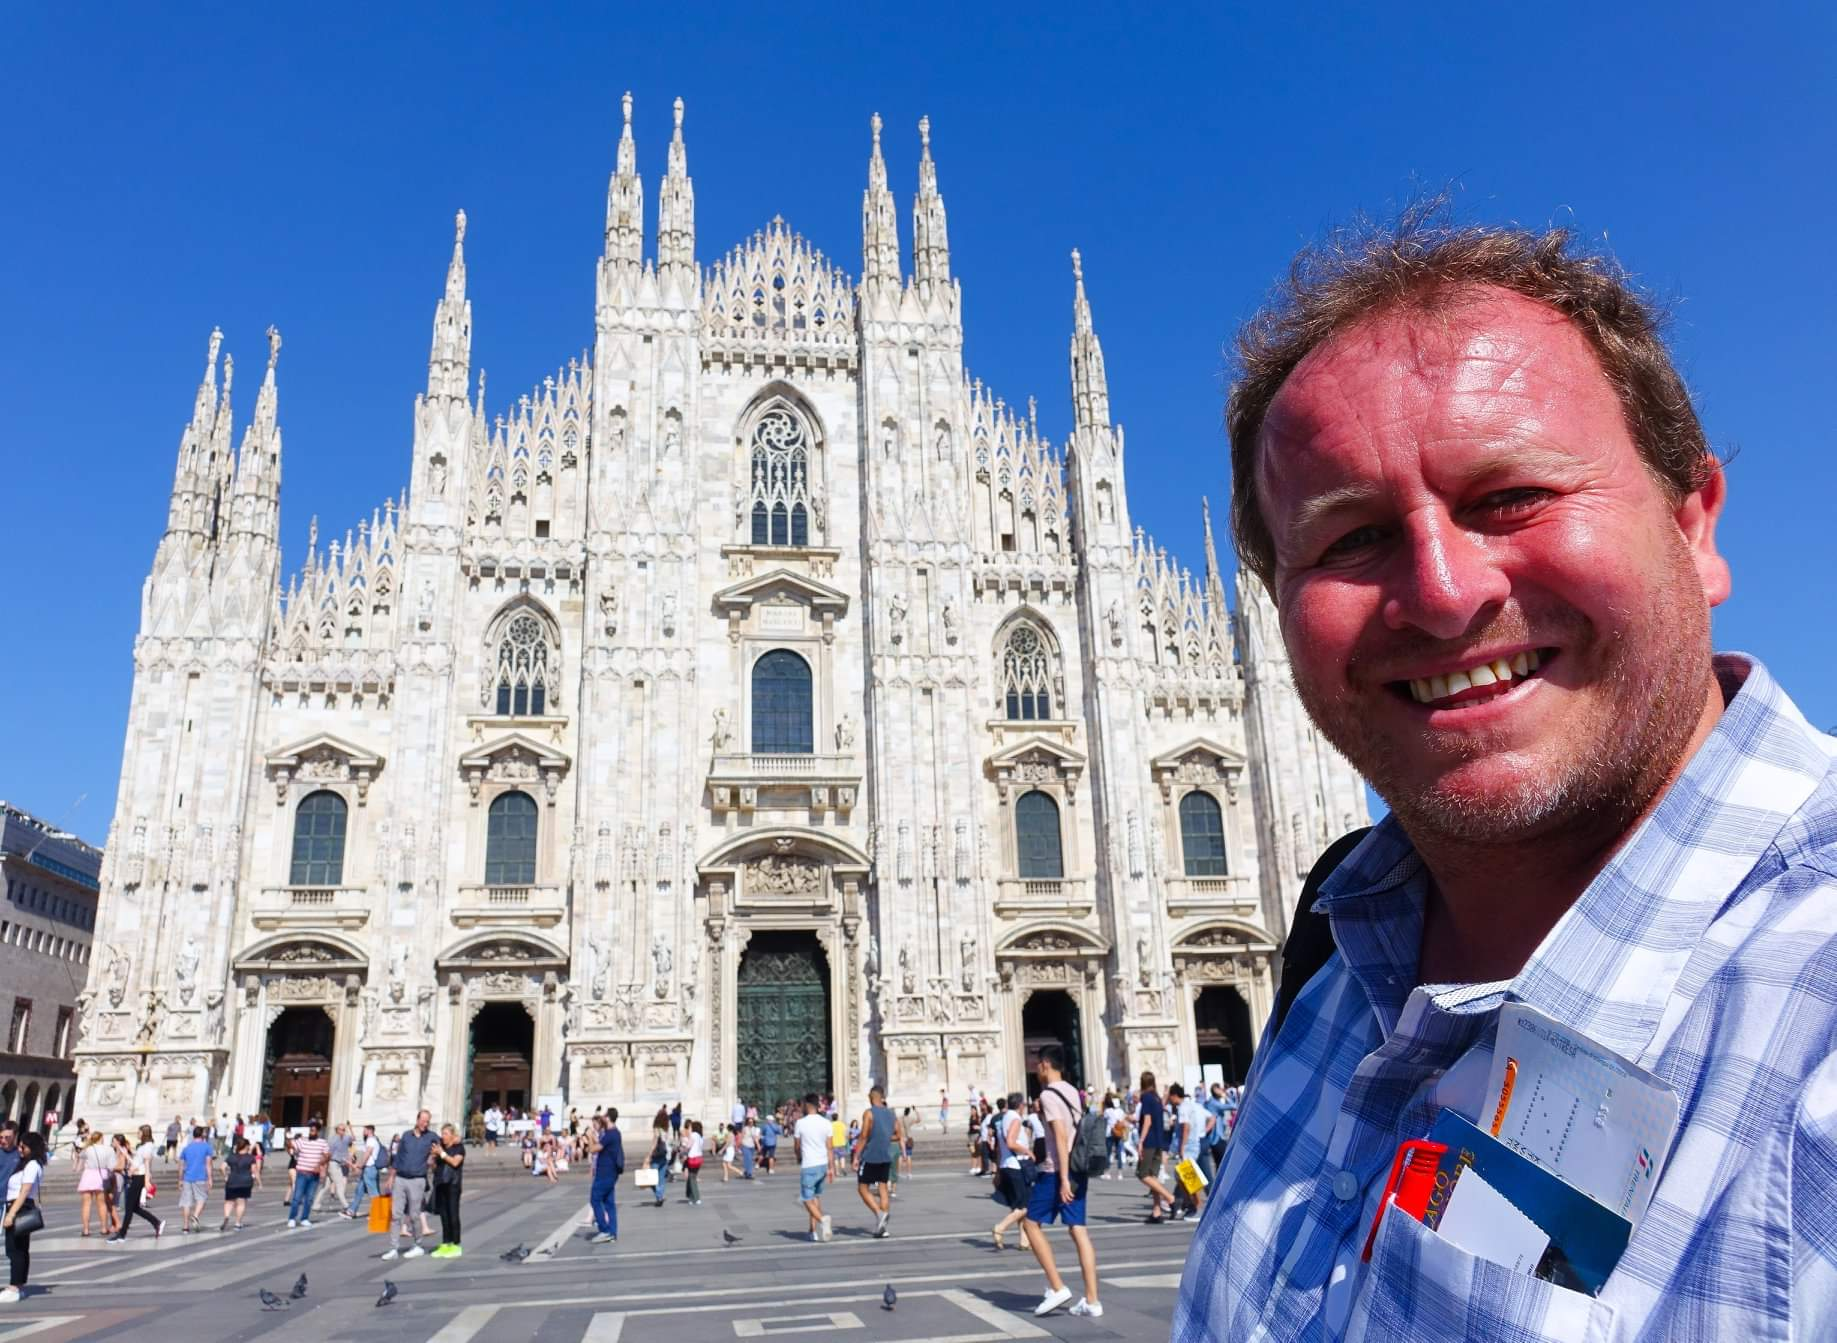 Milan, Italy. Visiting Italy's grandest Gothic cathedral